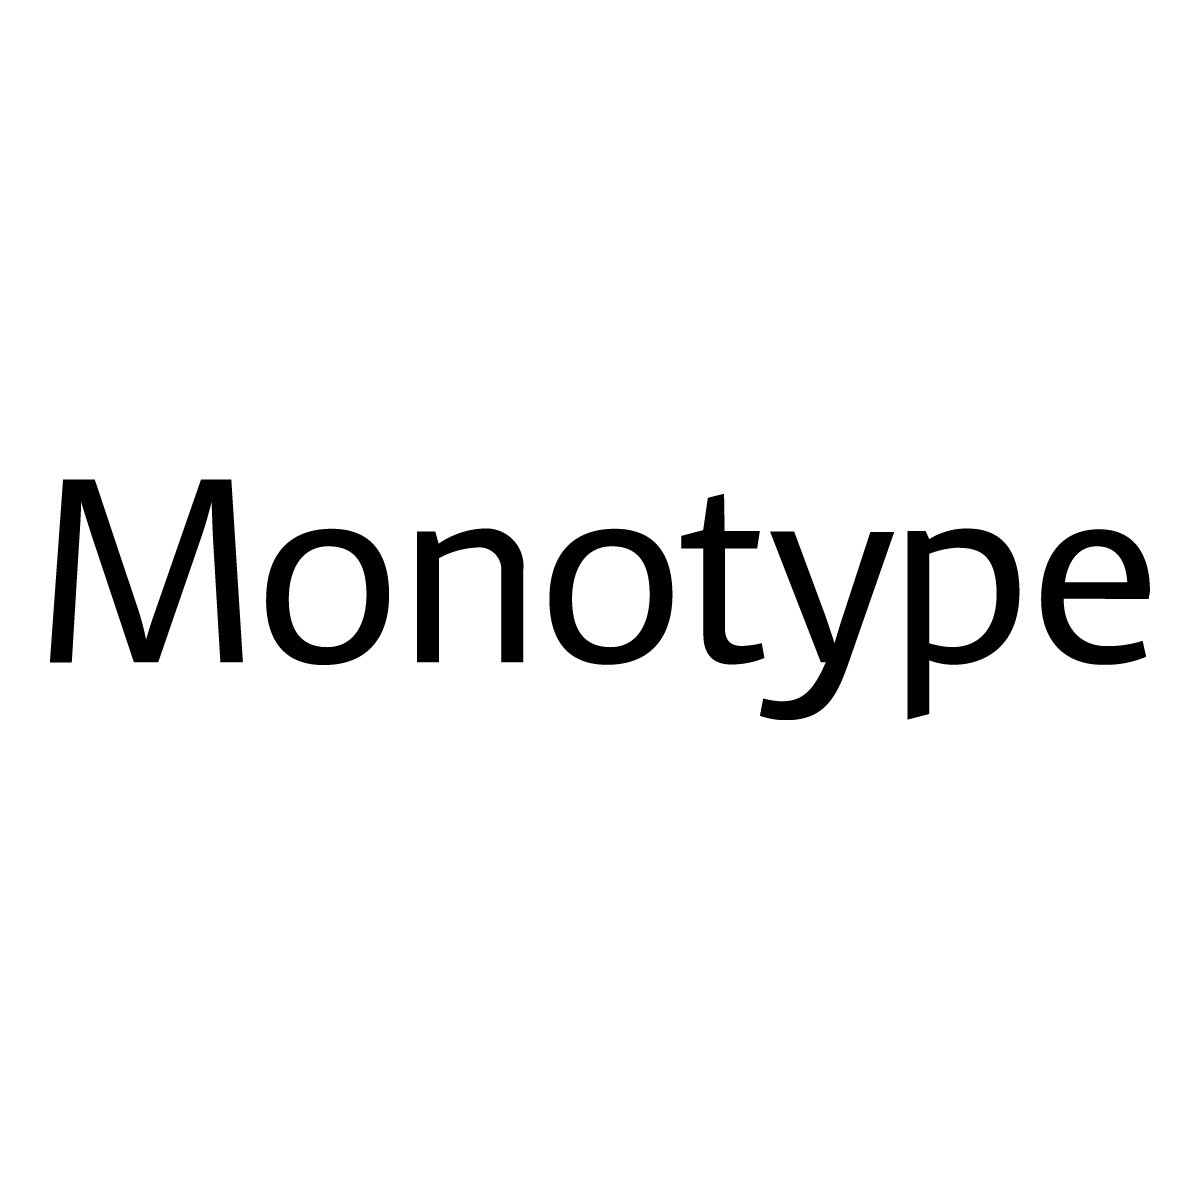 Monotype to Make Thousands of Fonts Available on iPhone and iPad